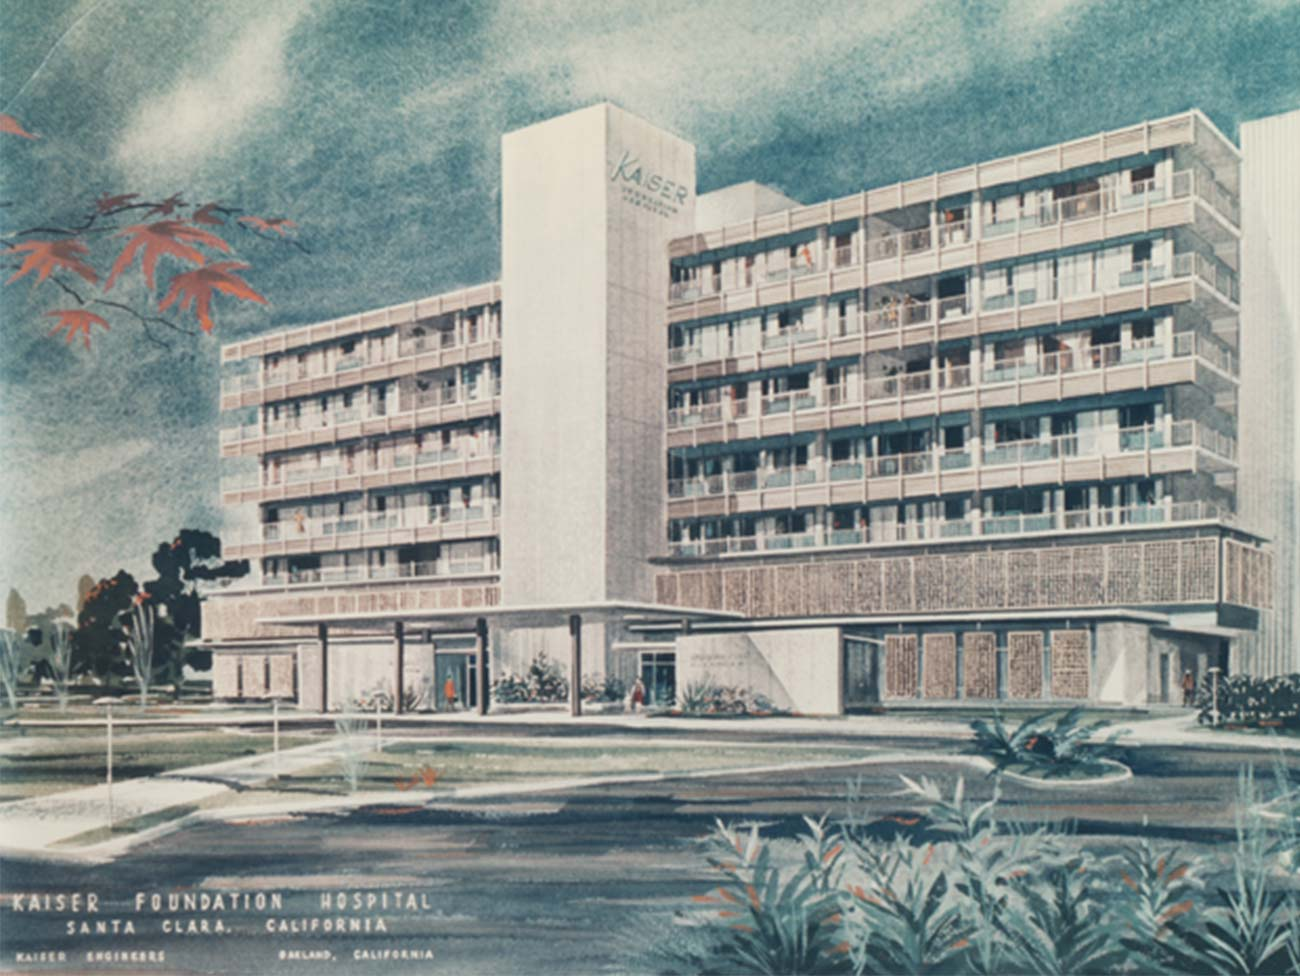 Architectural drawing by Kaiser Engineers, new Santa Clara Medical Center, 1963